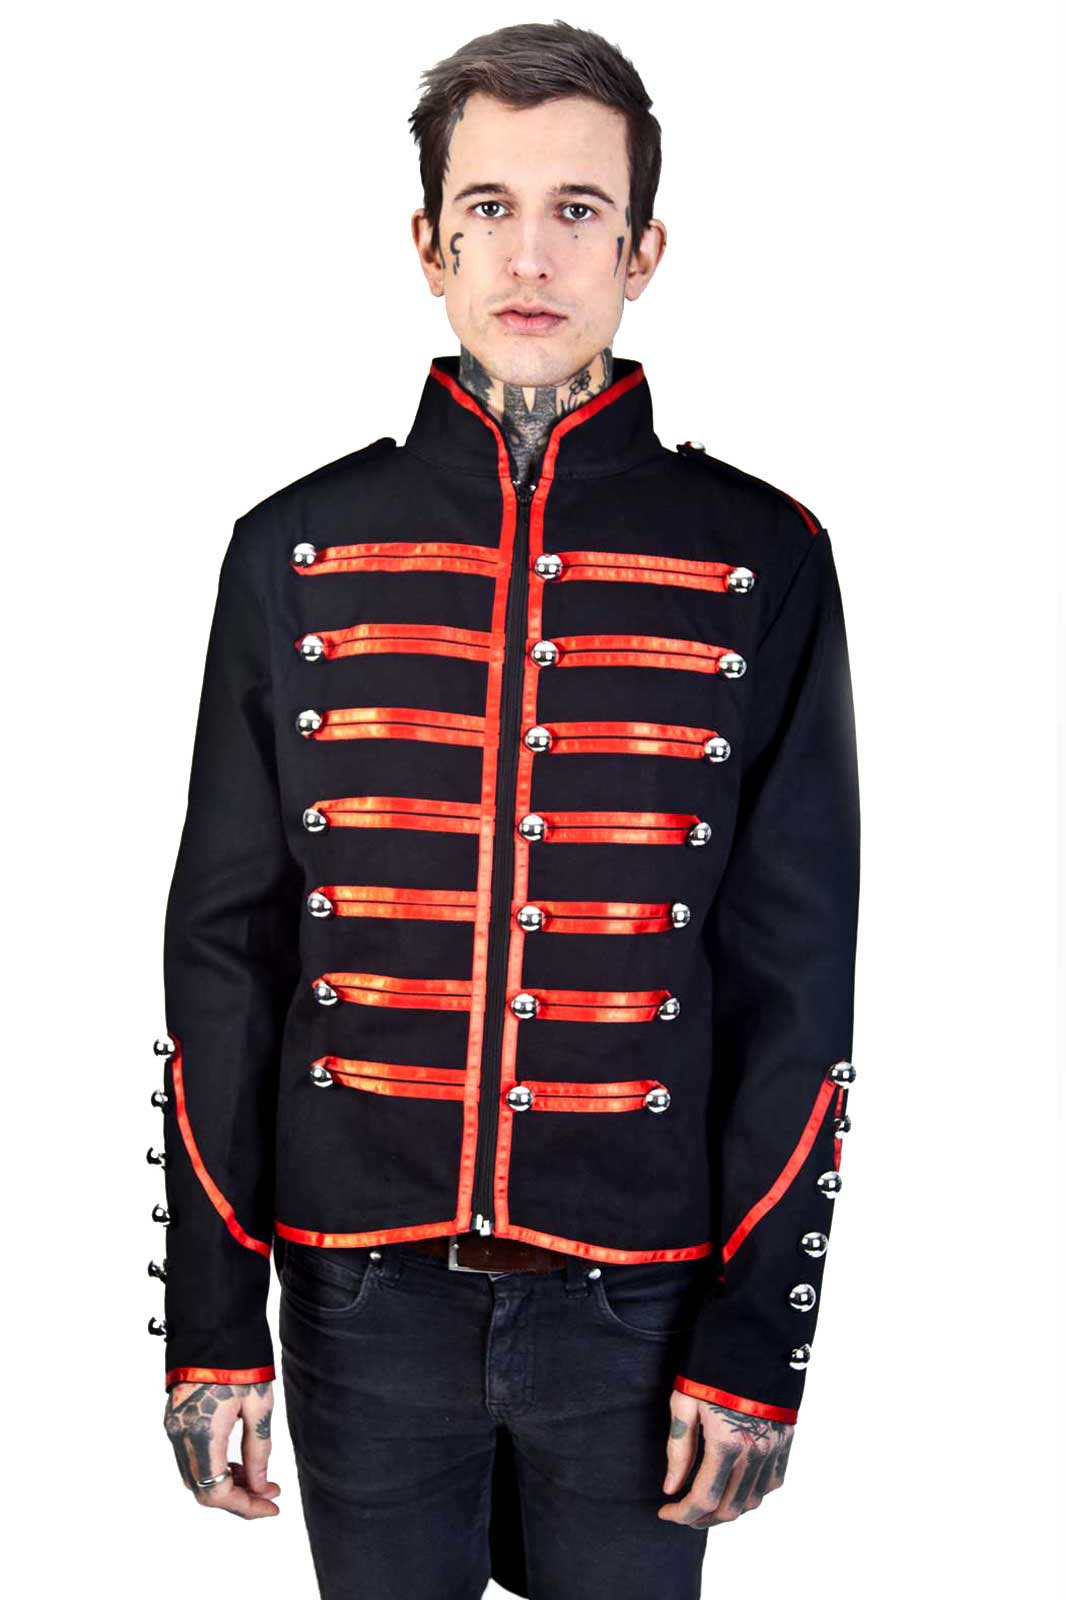 Military Drummer Tail Coat